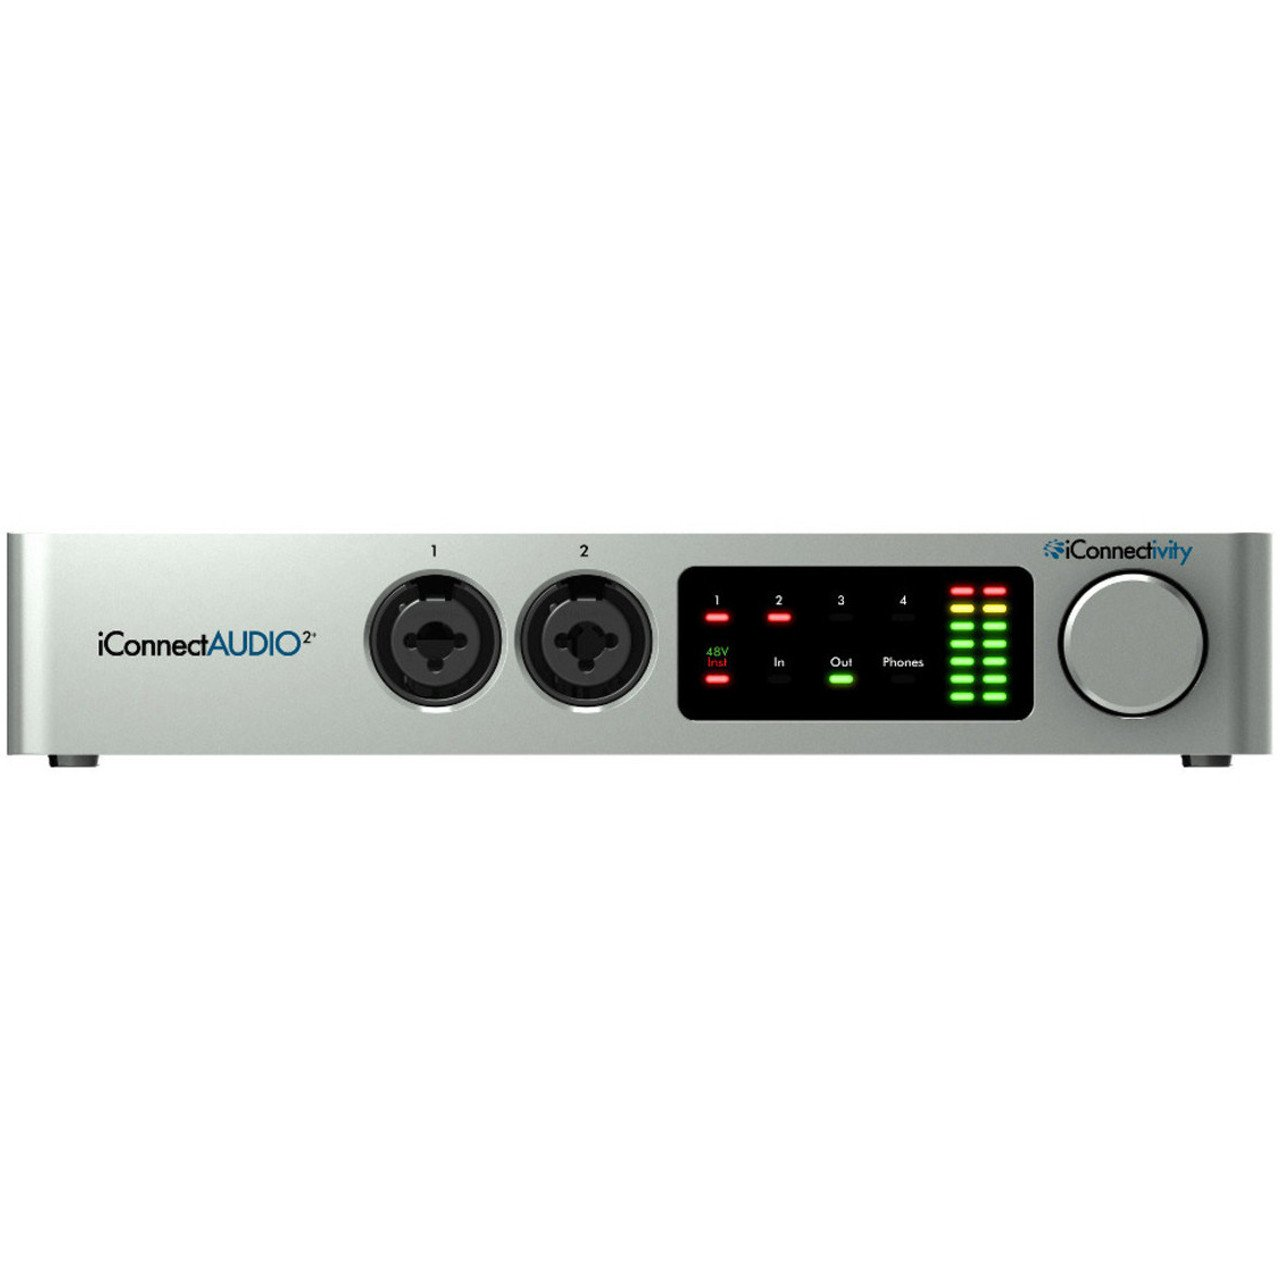 USB Audio Interfaces - IConnectivity IConnectAUDIO2+ 2-in 6-out Audio & MIDI Interface